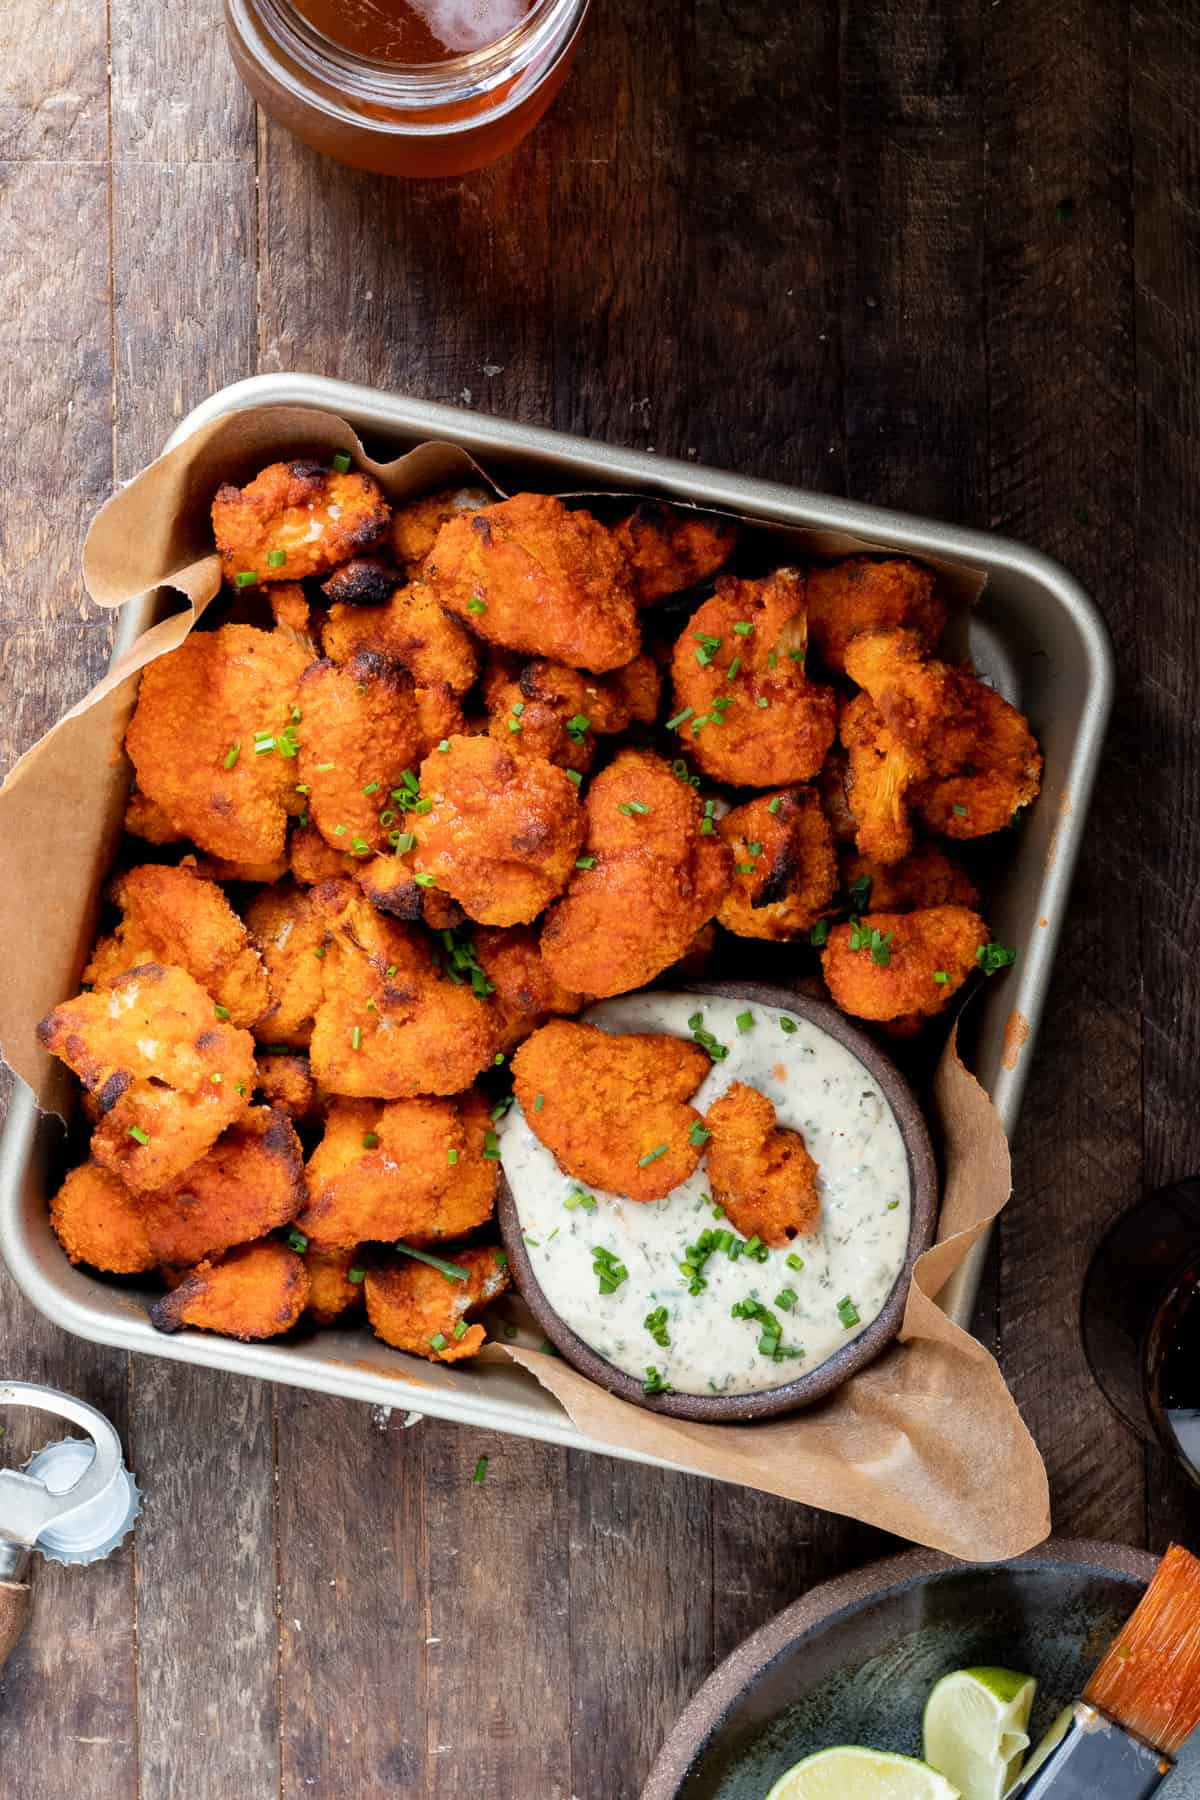 baked cauliflower buffalo wings in square container with a glass of cold beer and limes